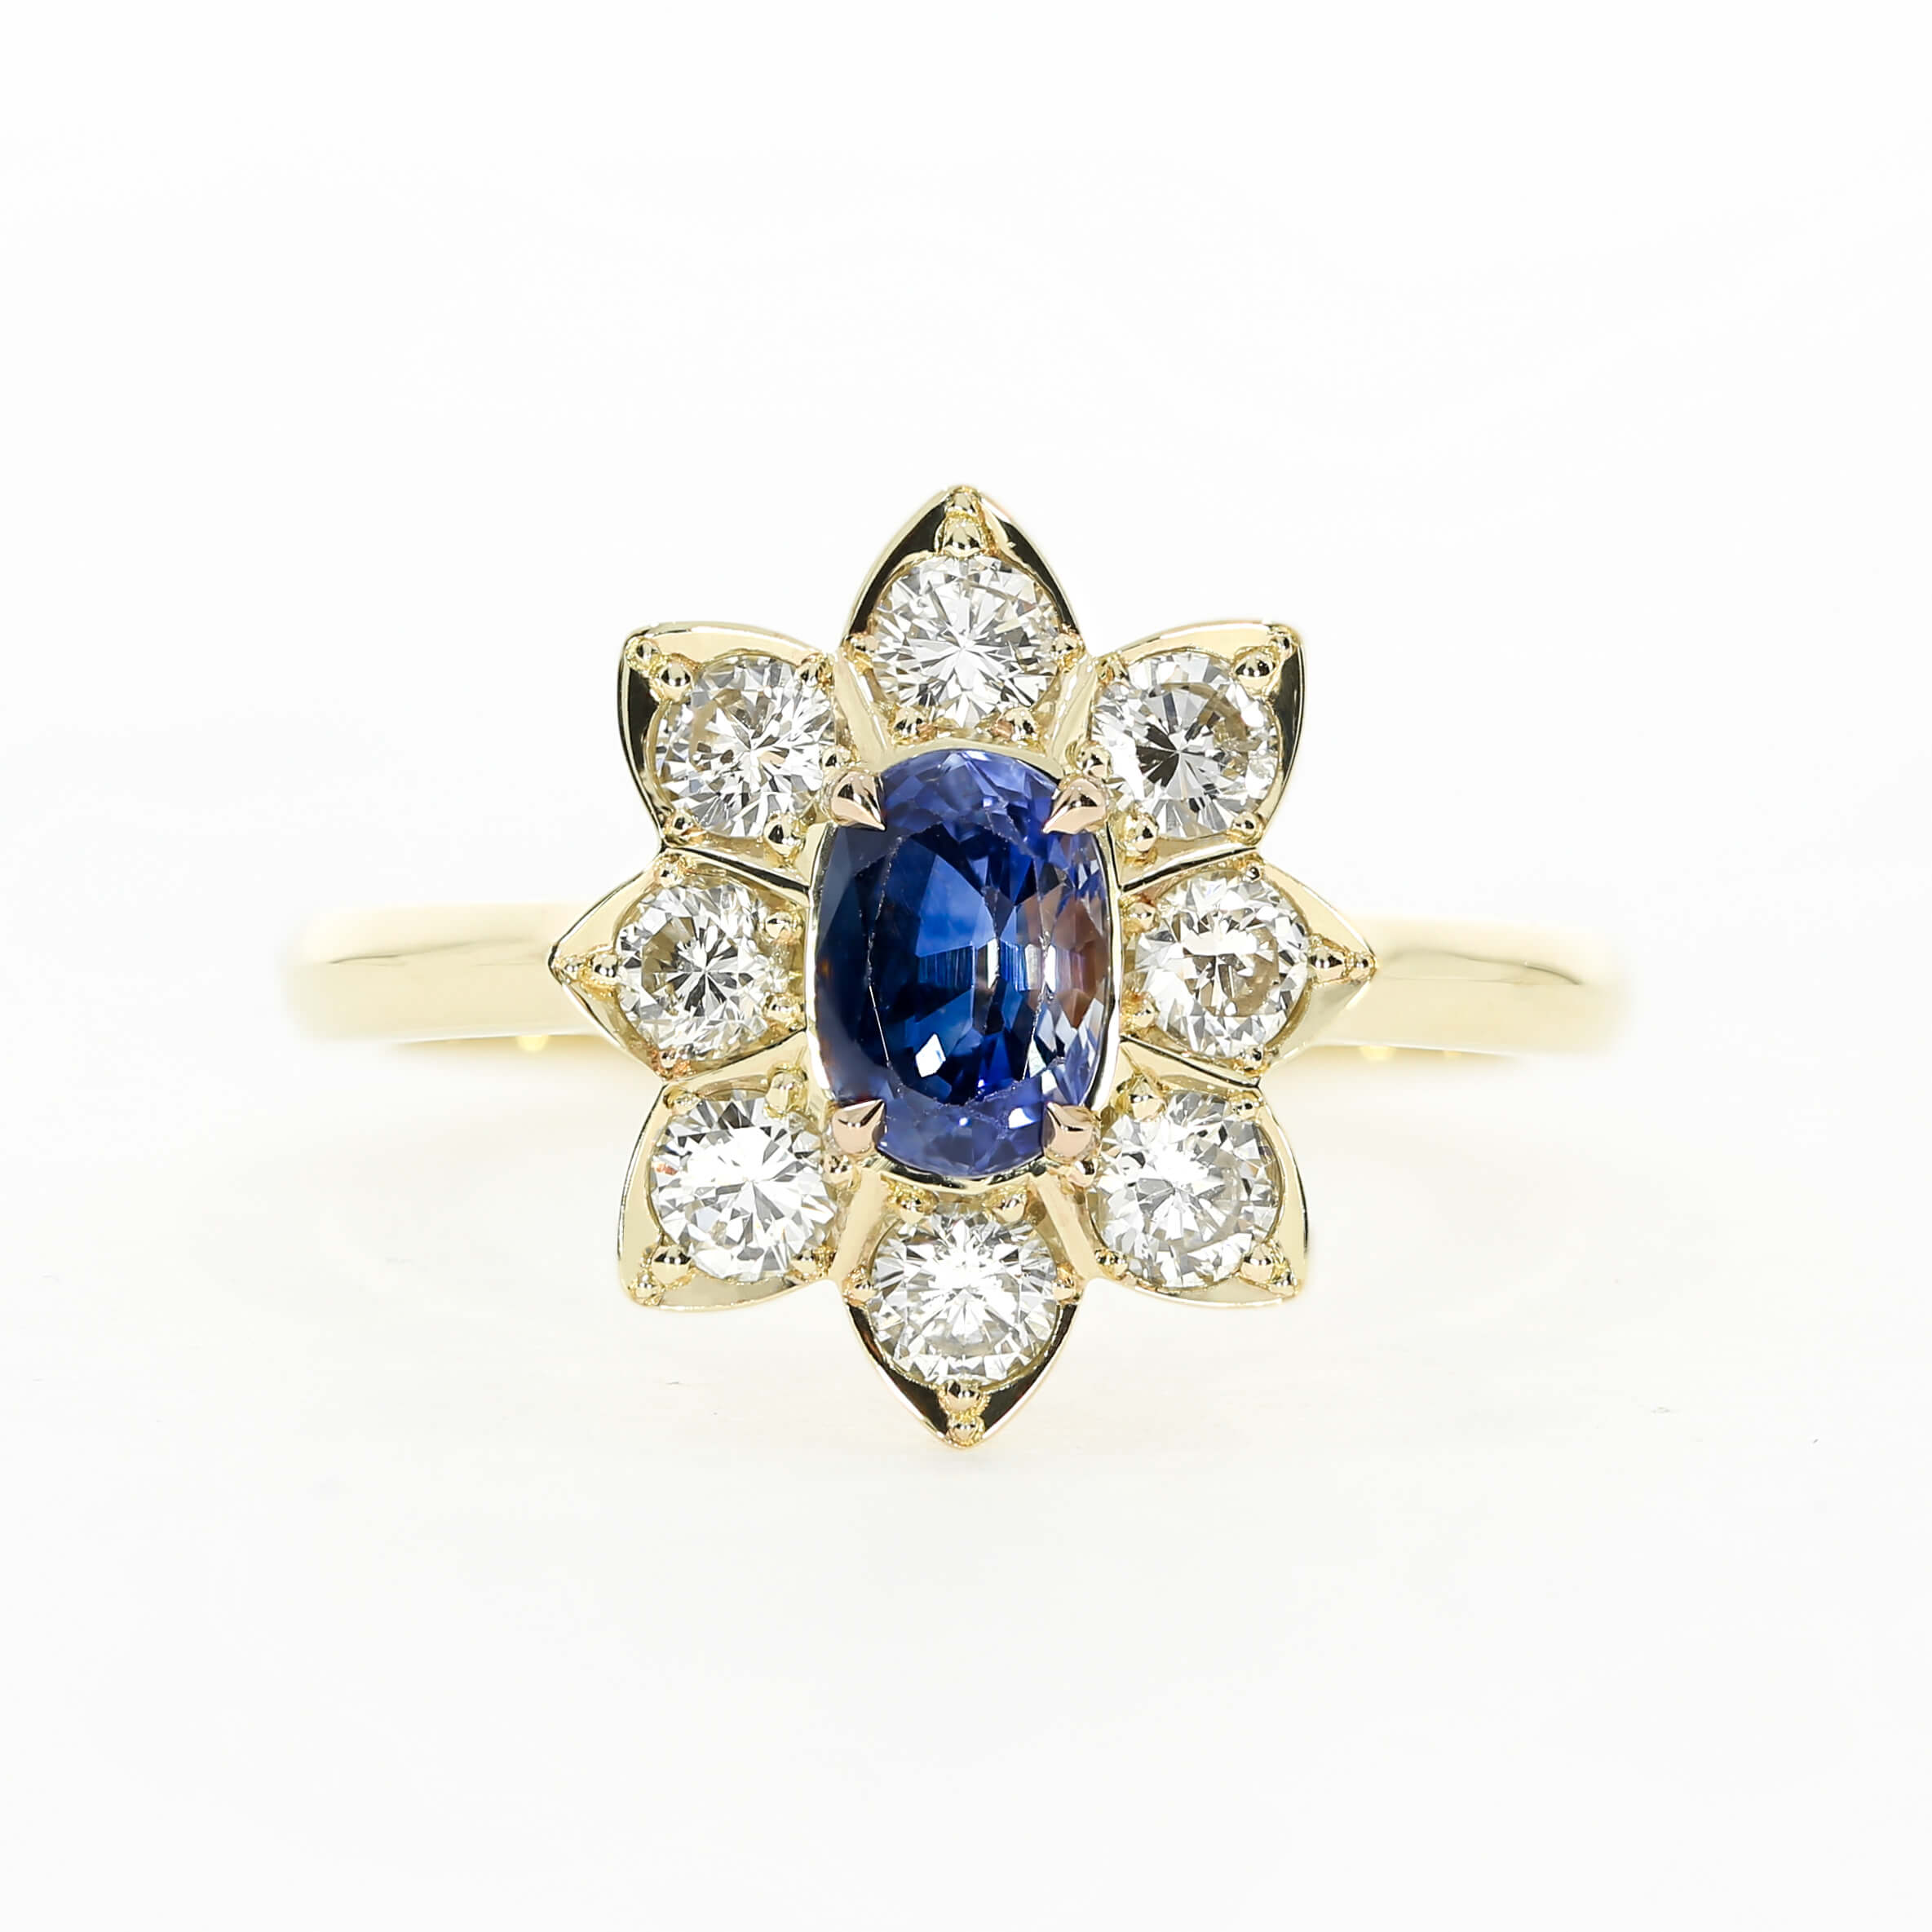 Using a flower halo gives the impression of an antique engagement ring, by Queensmith